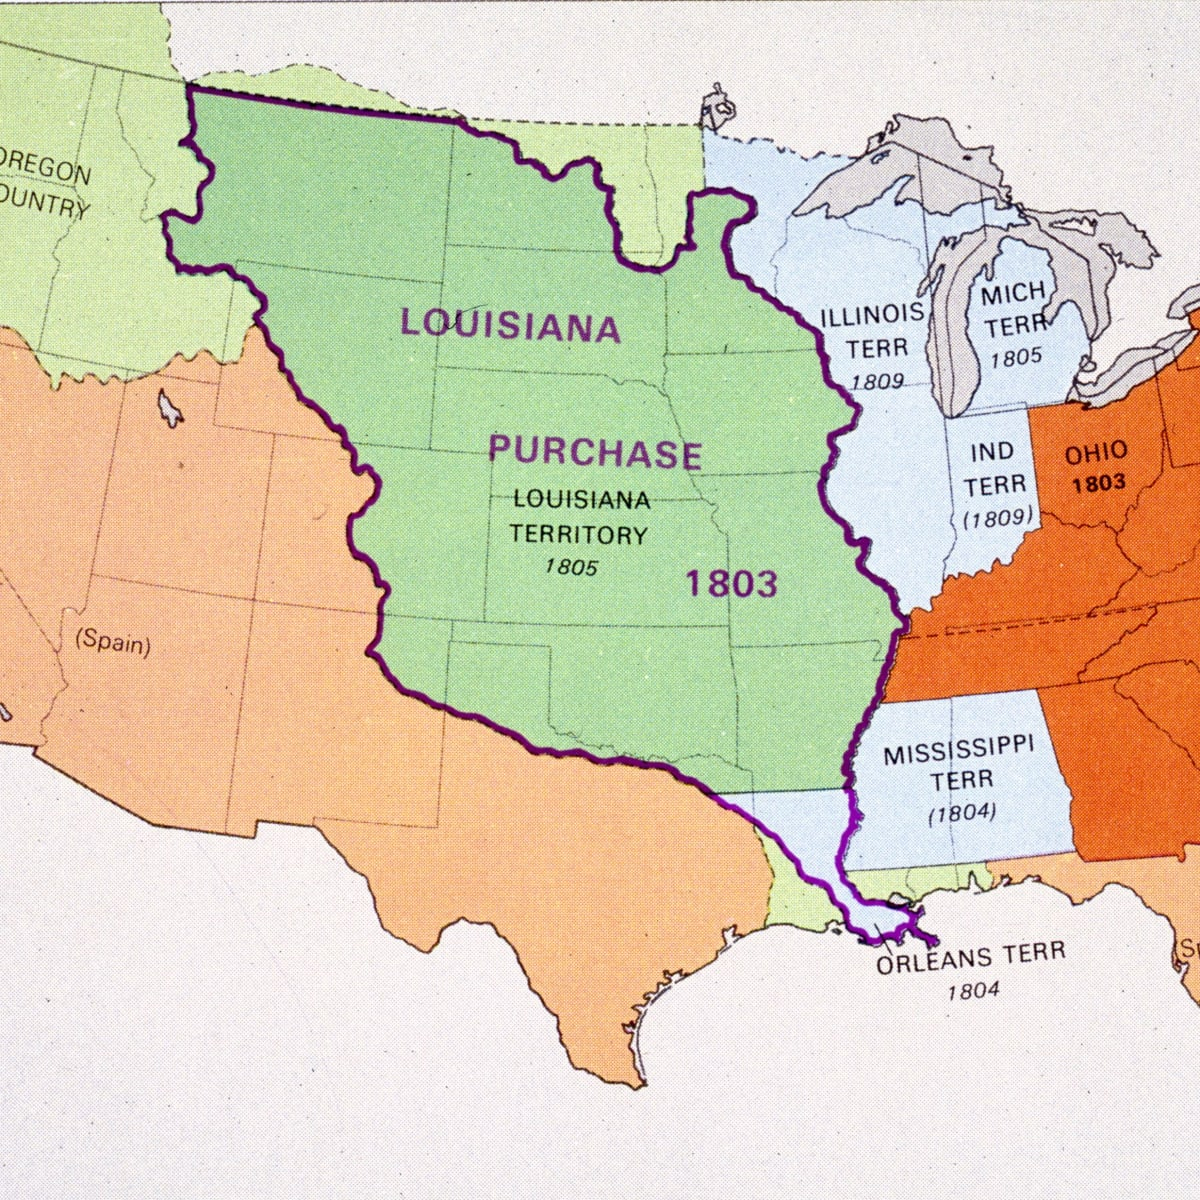 united states map louisiana purchase Louisiana Purchase Definition Facts Importance History